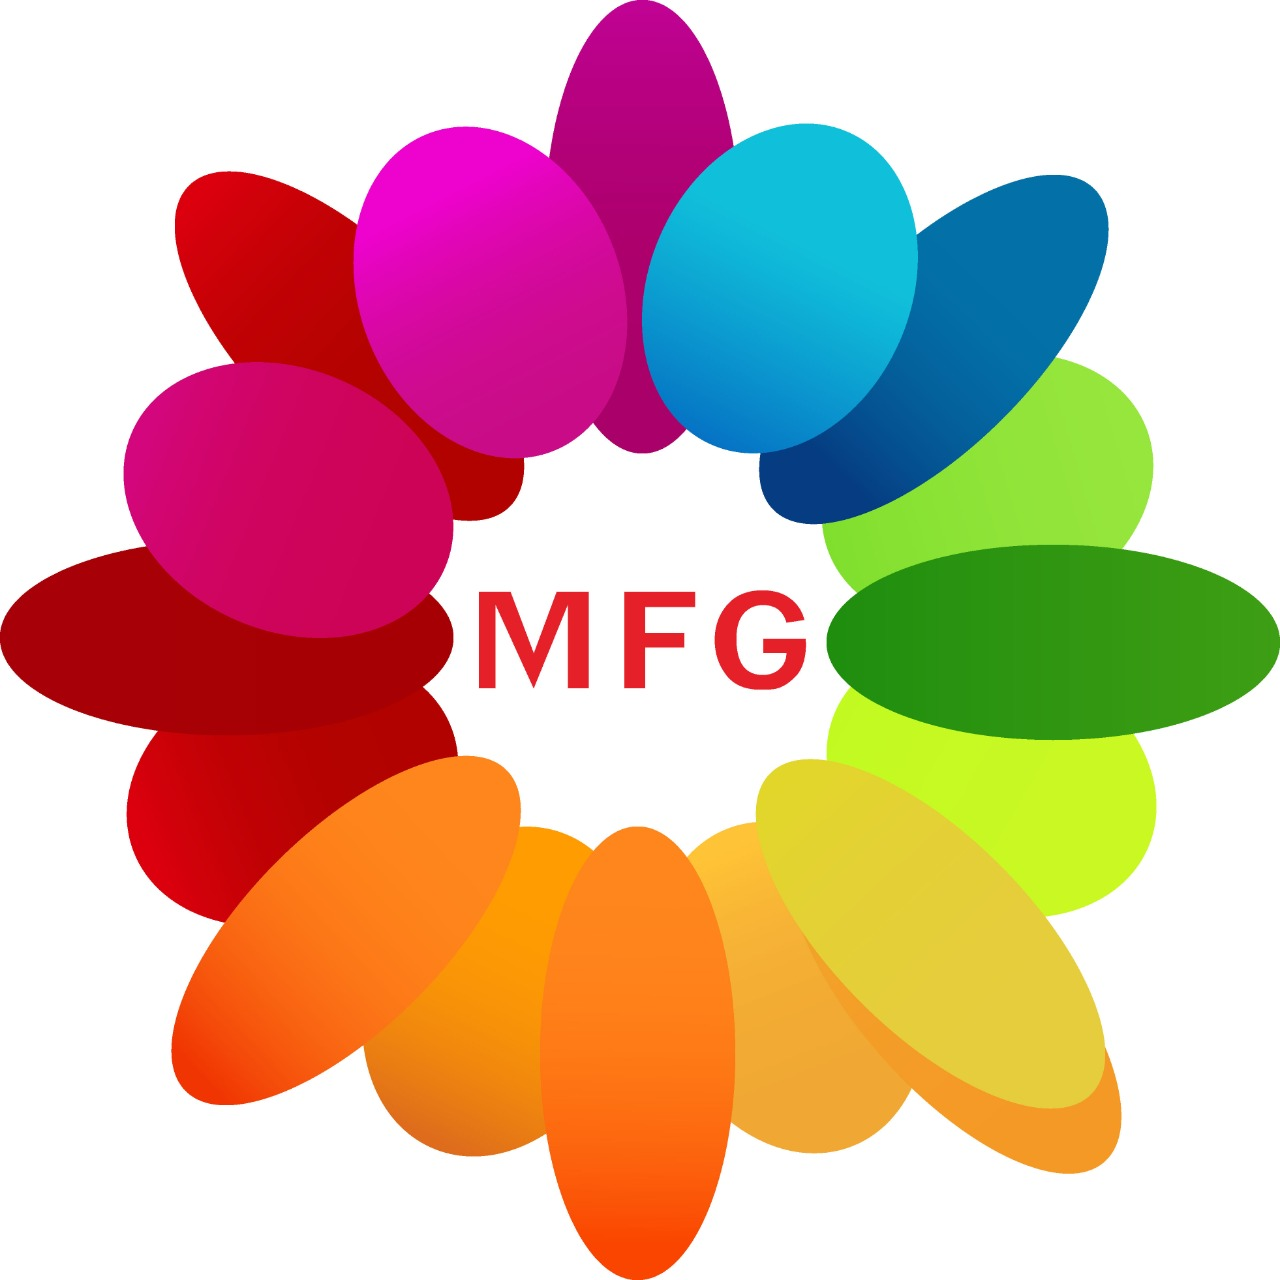 Rich looking bunch of 50 red roses with 1 pound chocolate truffle cake with bottle of wine